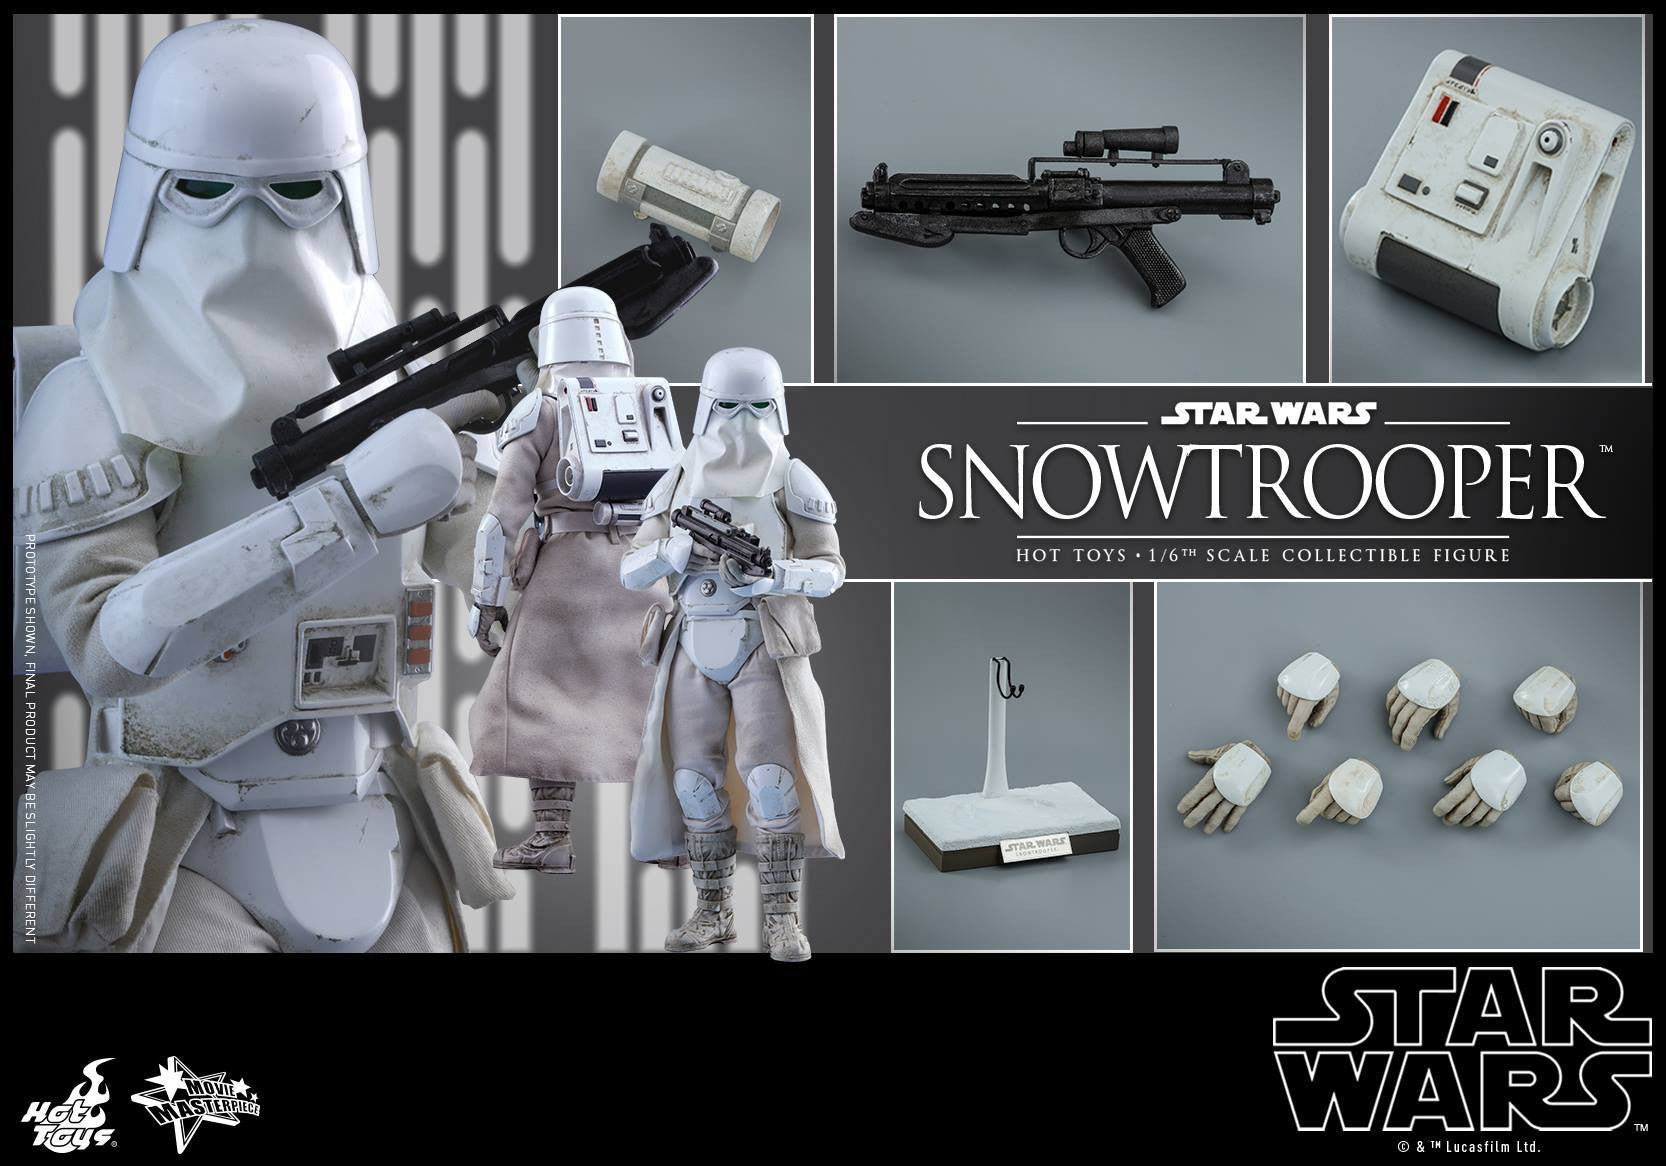 Hot Toys - MMS397 - Star Wars Episode V: The Empire Strikes Back - Snowtrooper - Marvelous Toys - 11